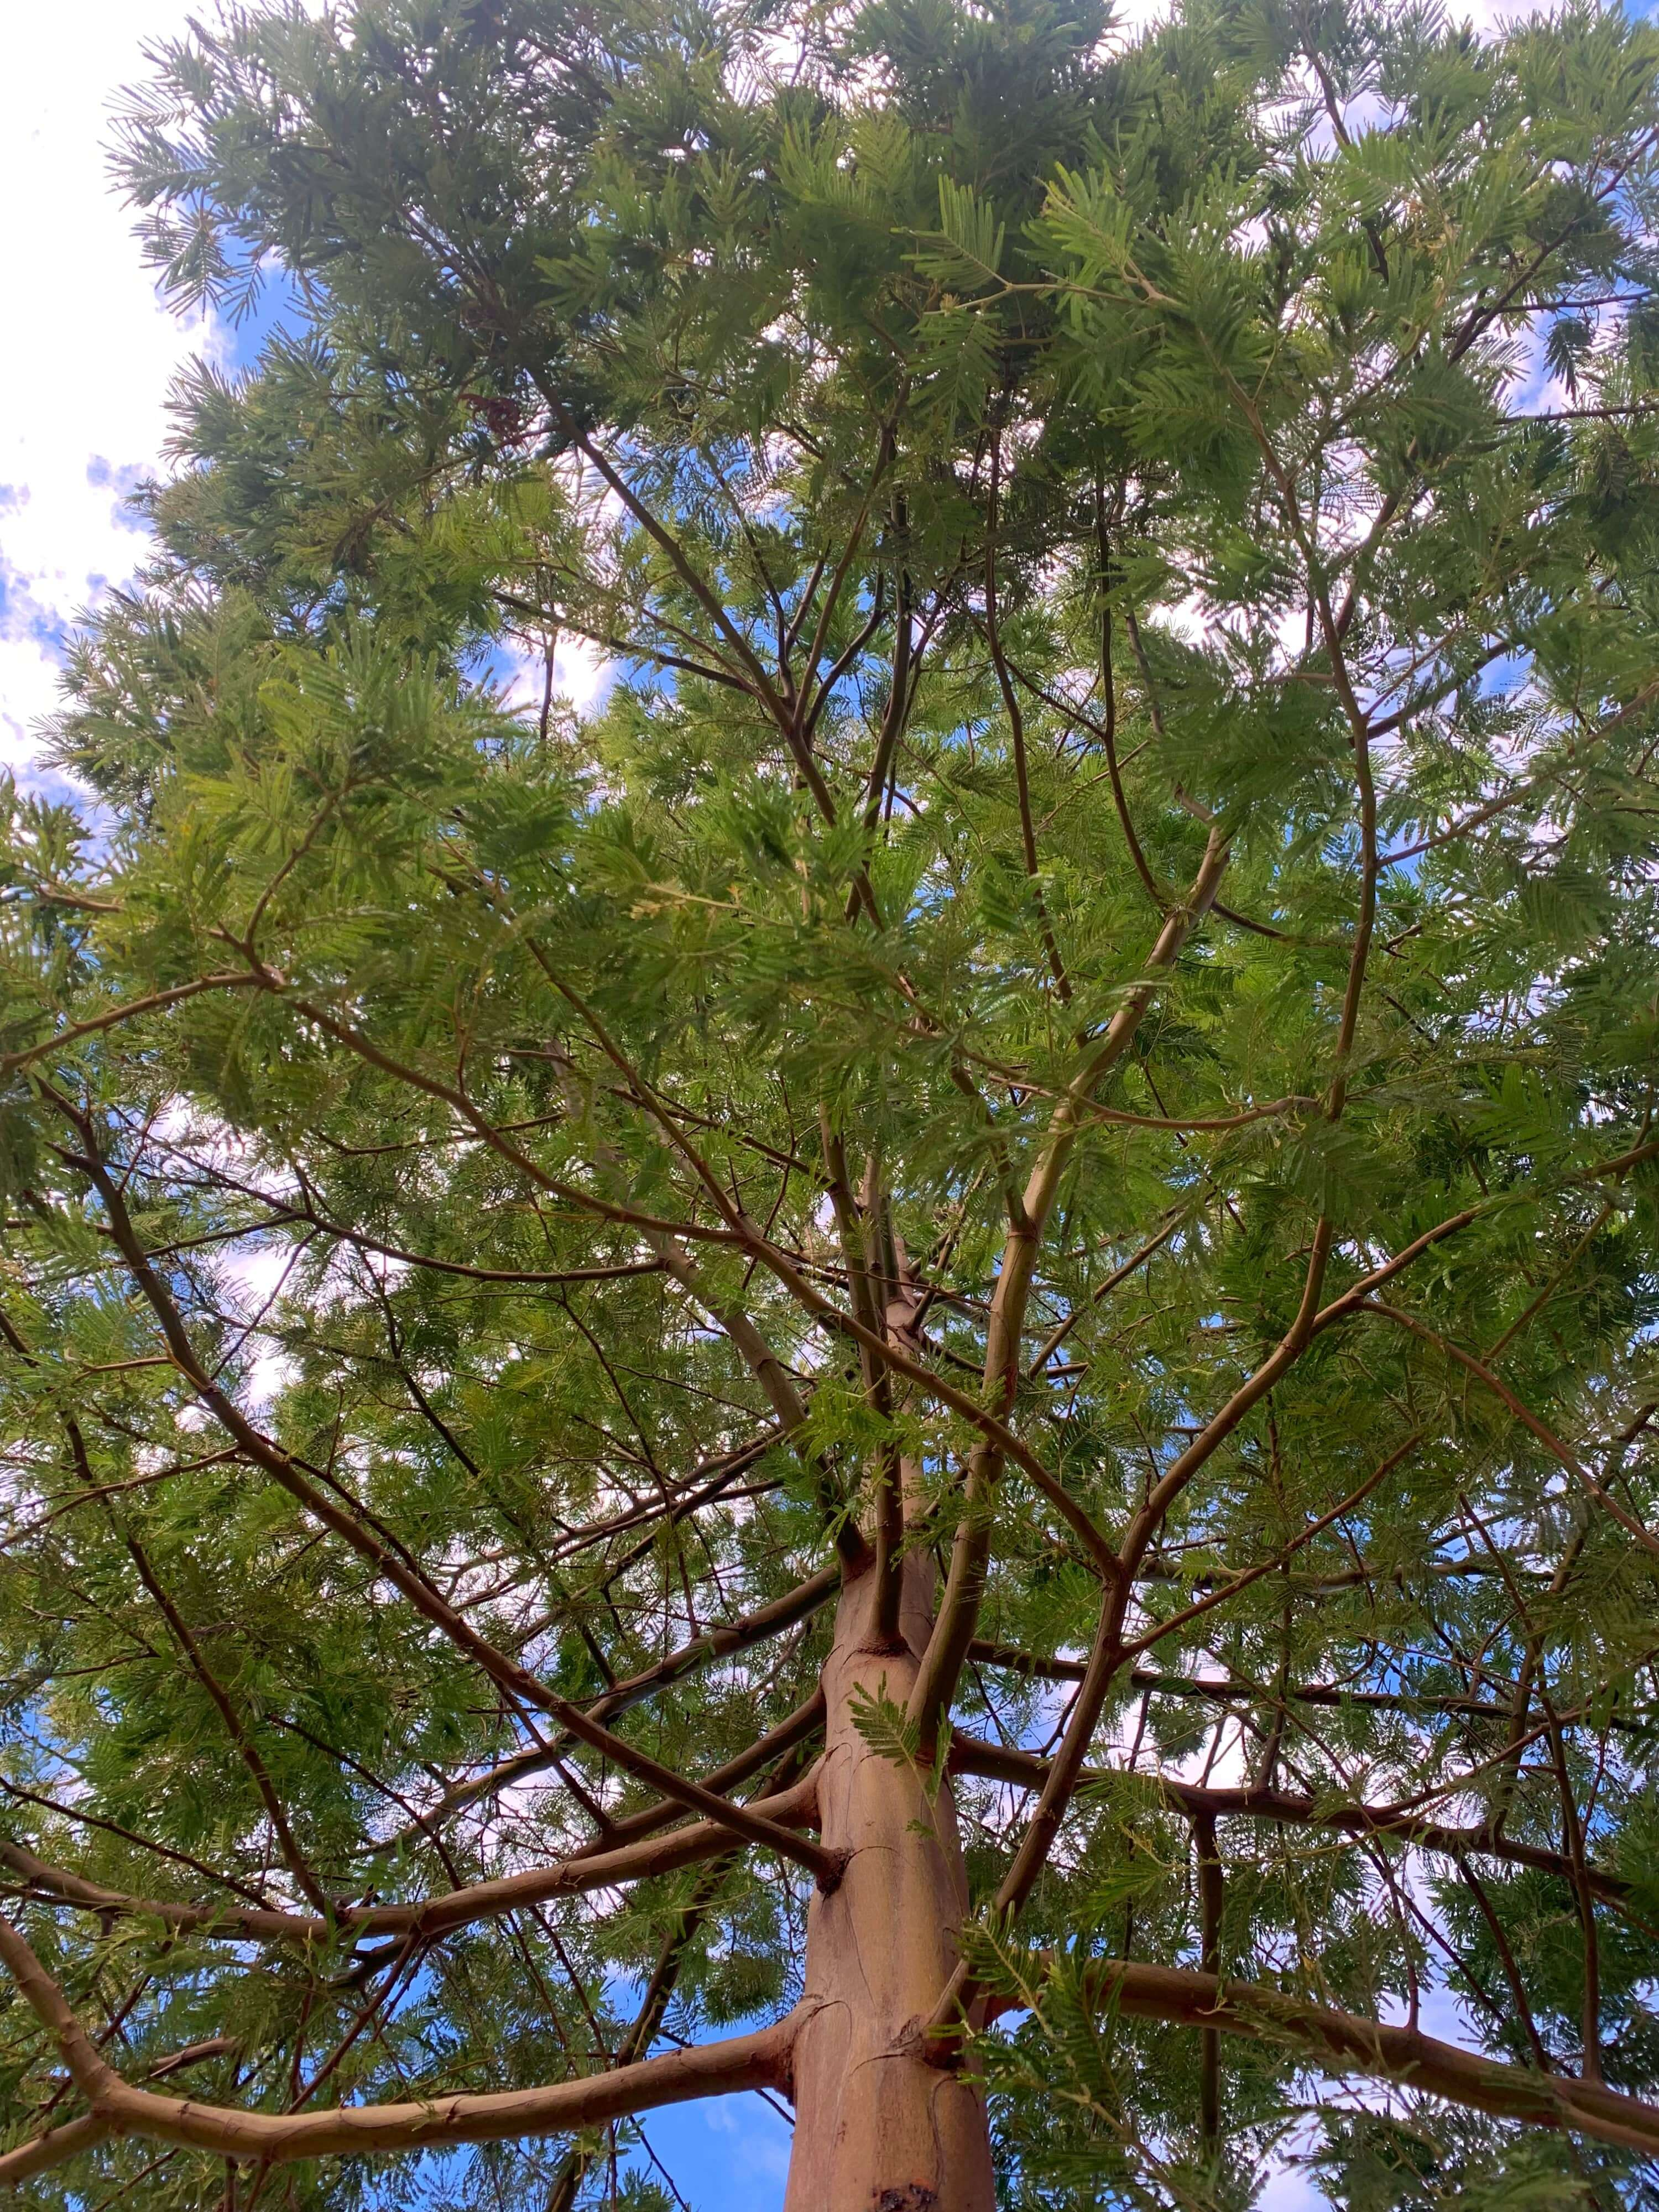 photo of a tree's branches spreading out, as seen from below